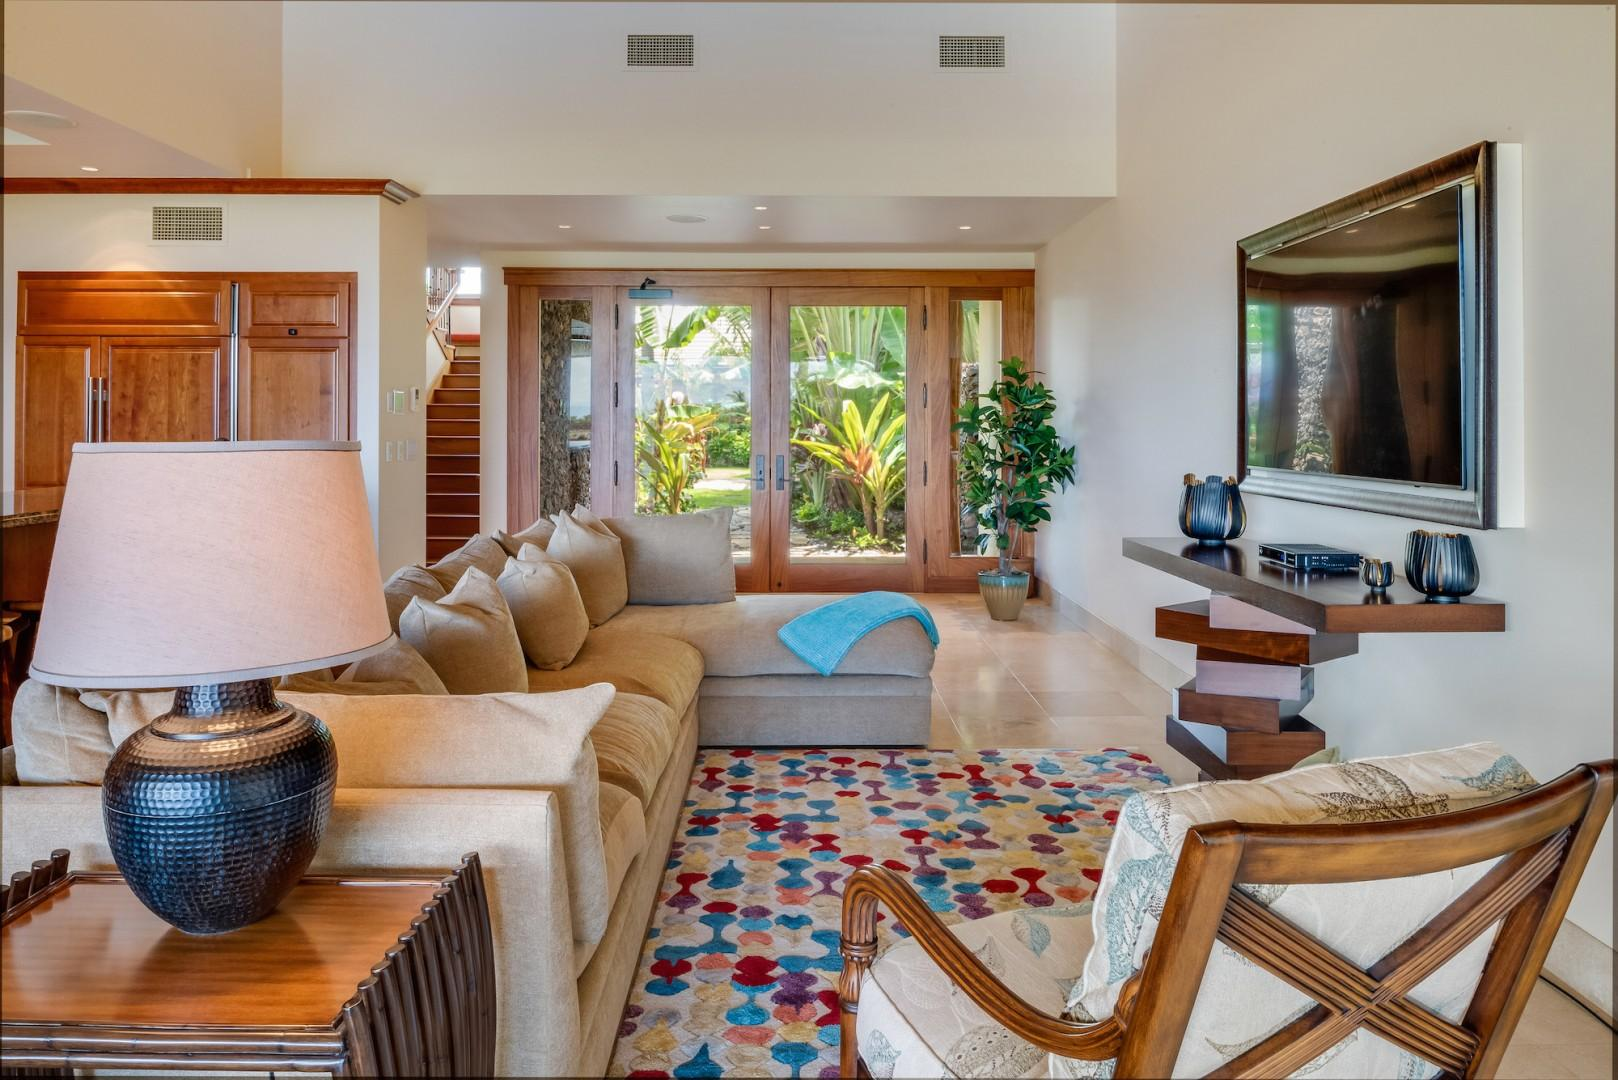 Double Doors from Courtyard Enter into Living Room w/ Plush Sofa and Large Flatscreen TV.